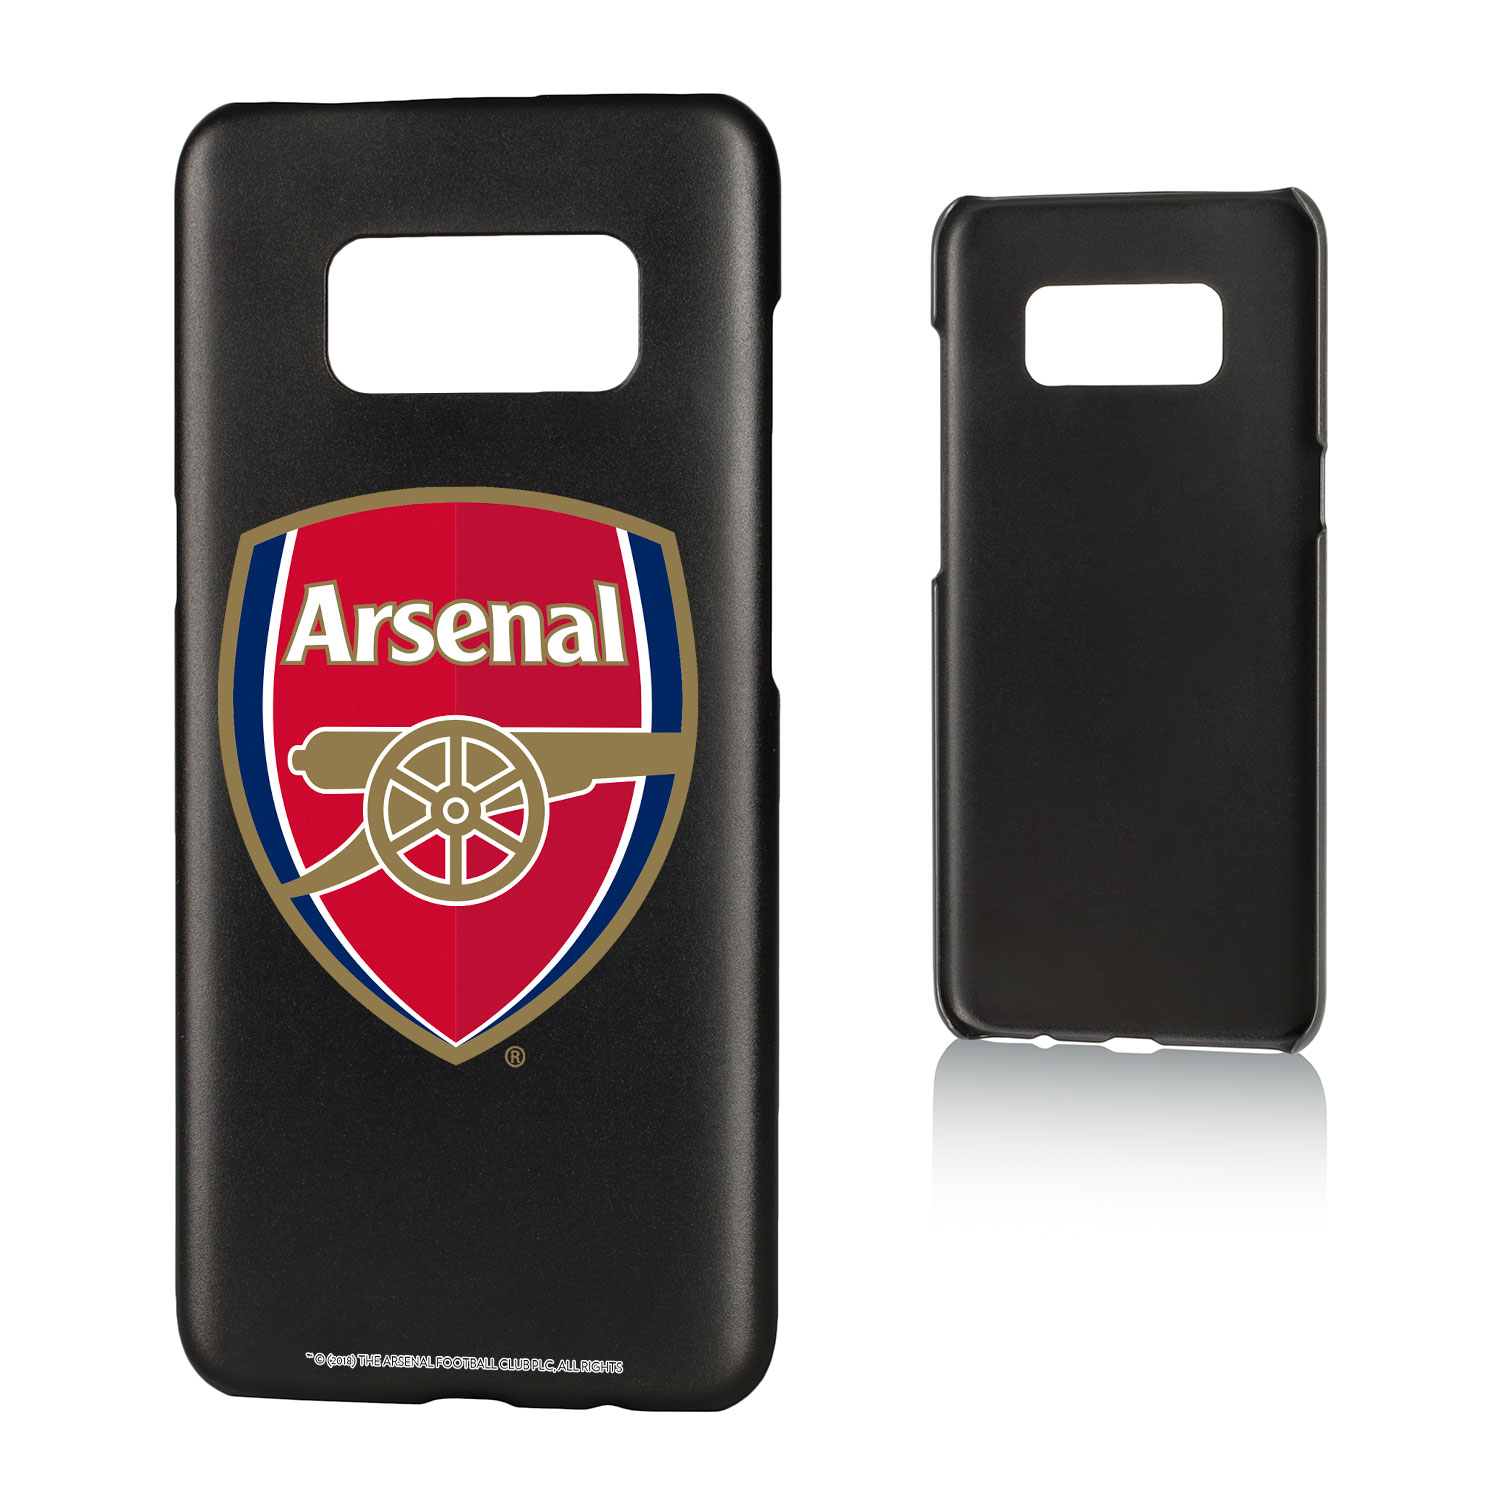 Arsenal Arsenal Gunners Insignia Slim Case for Galaxy S8